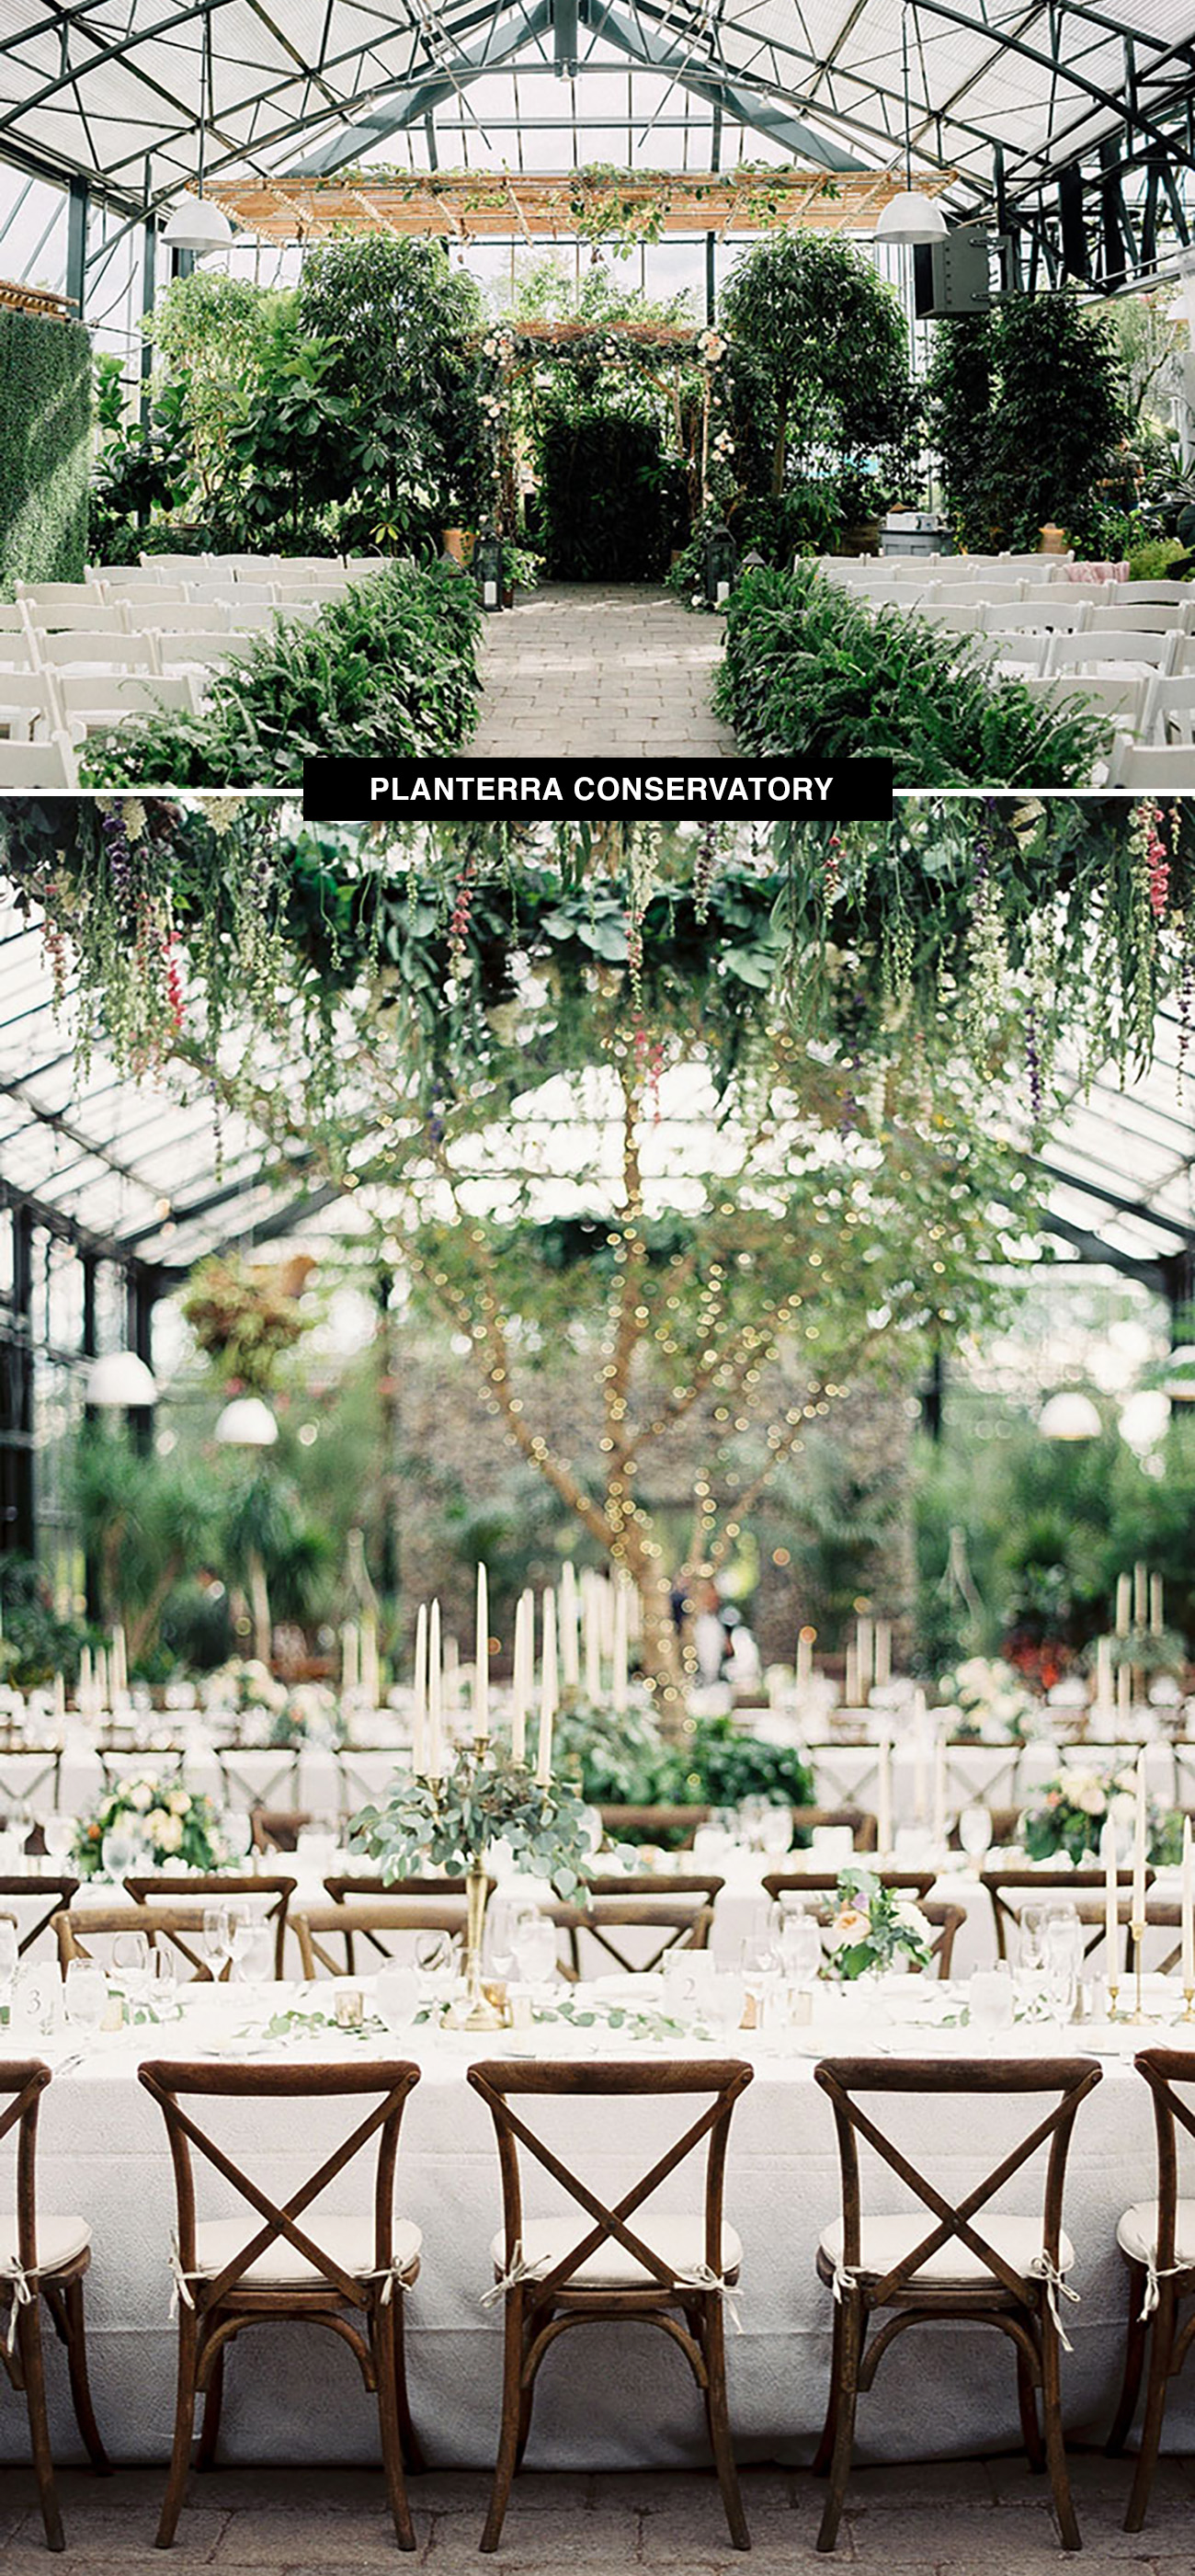 Planterra Conservatory wedding venue in Michigan is a place to get married surrounded by greenery year round